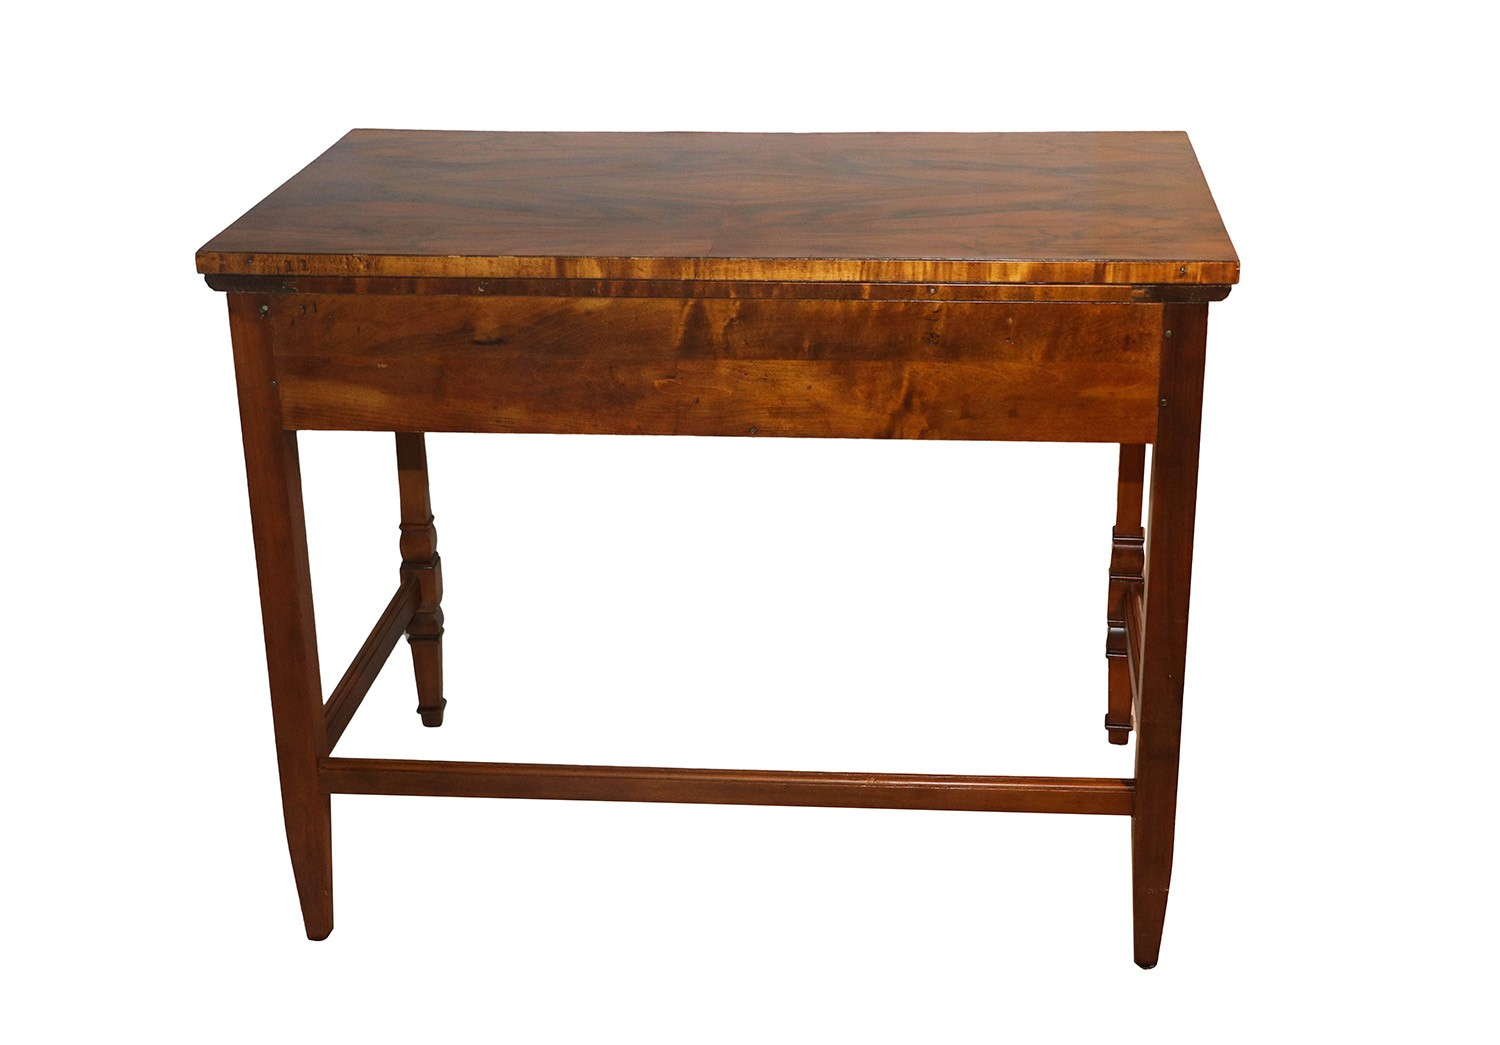 Figured Walnut And Maple Side Table Desk